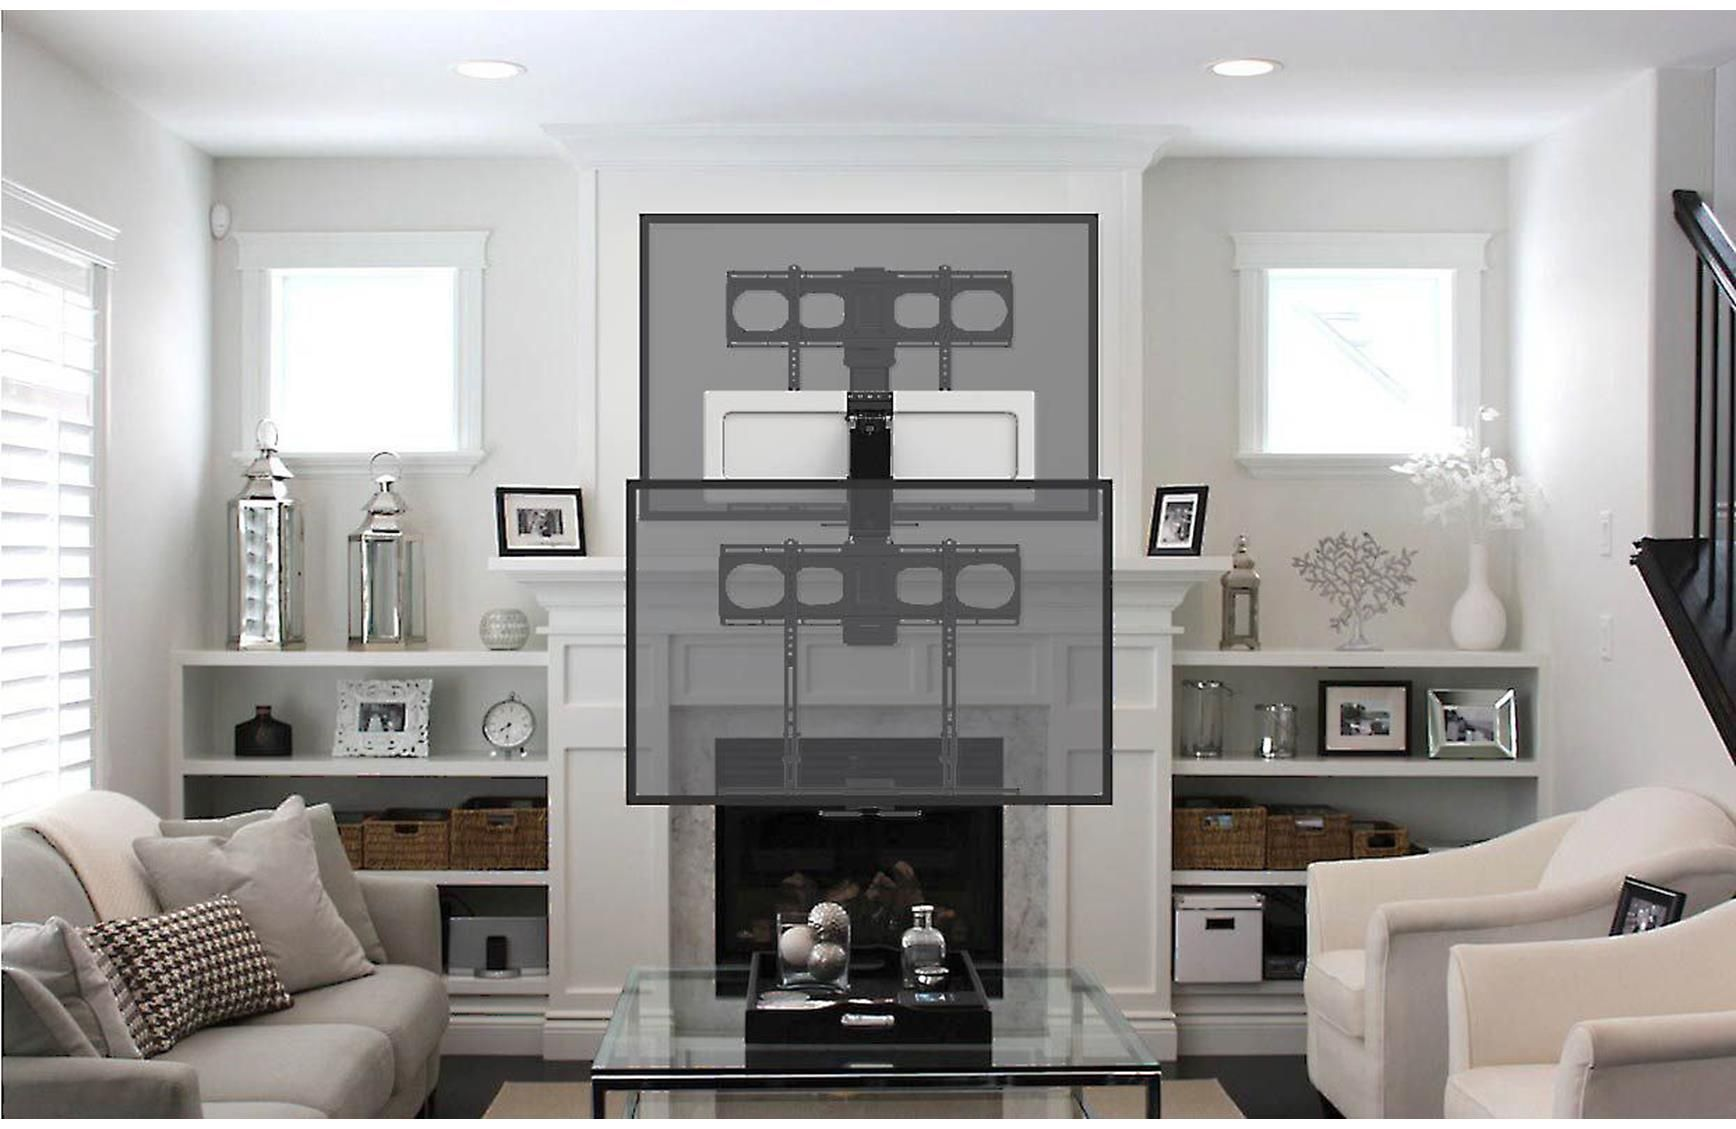 Mantelmount Mm540 Pull Down Tilt And Swivel Wall Mount For Tvs 44 80 At Crutchfield Mounted Tv Tv Mount Over Fireplace Home